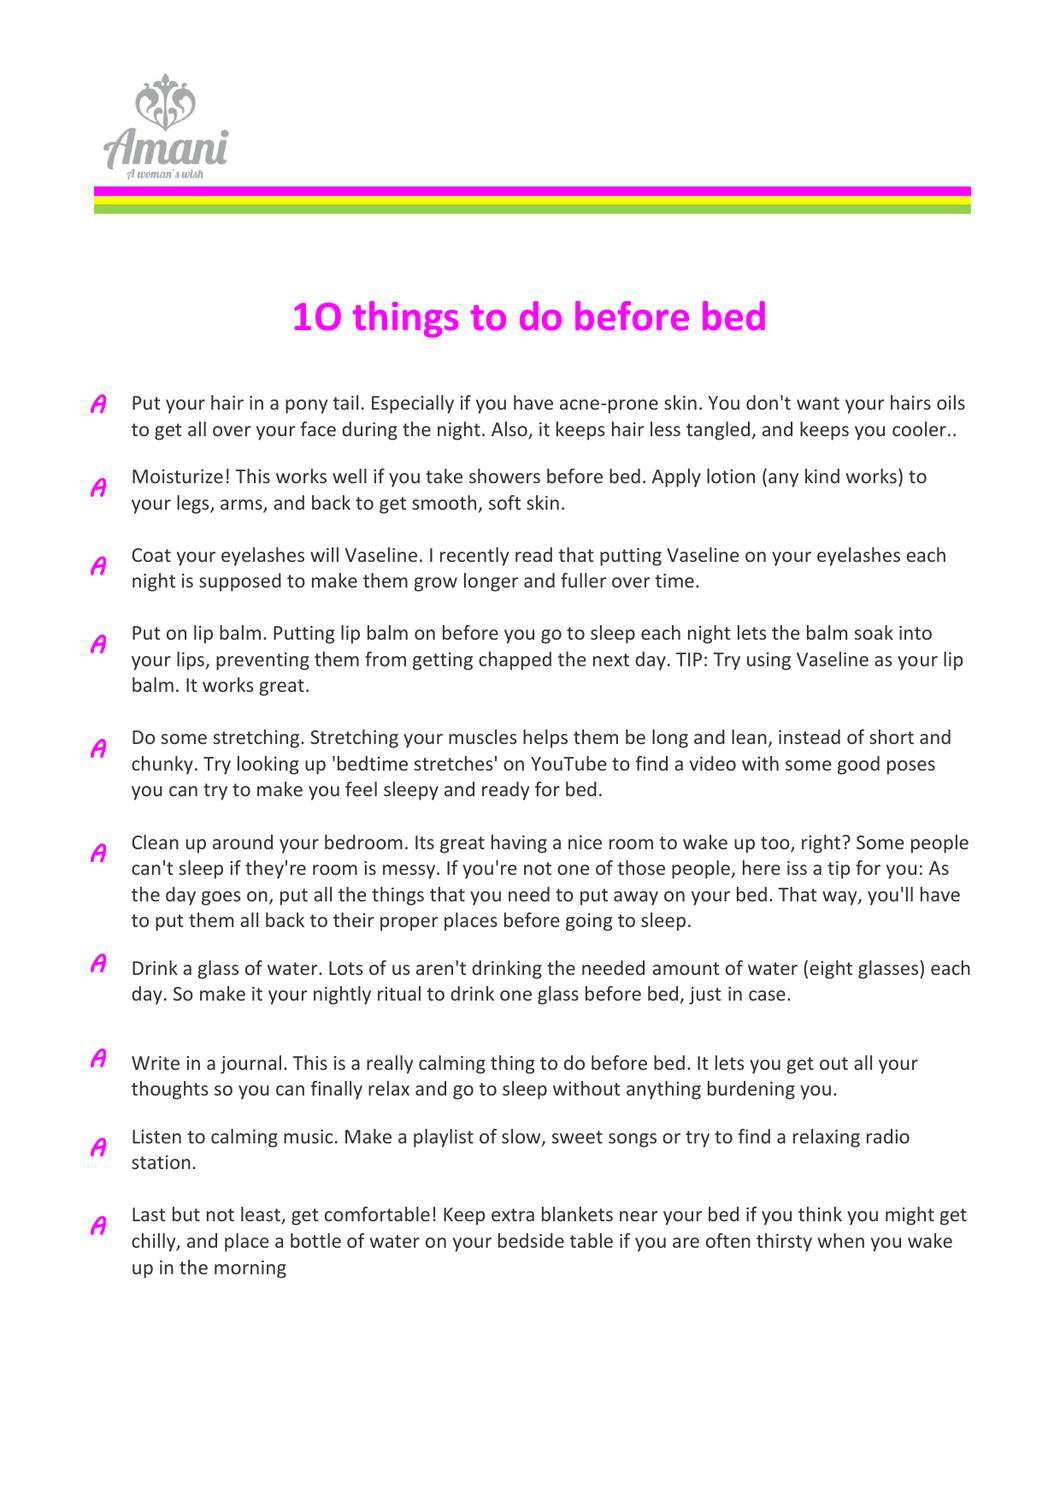 10 before you go to bedamani pads - issuu